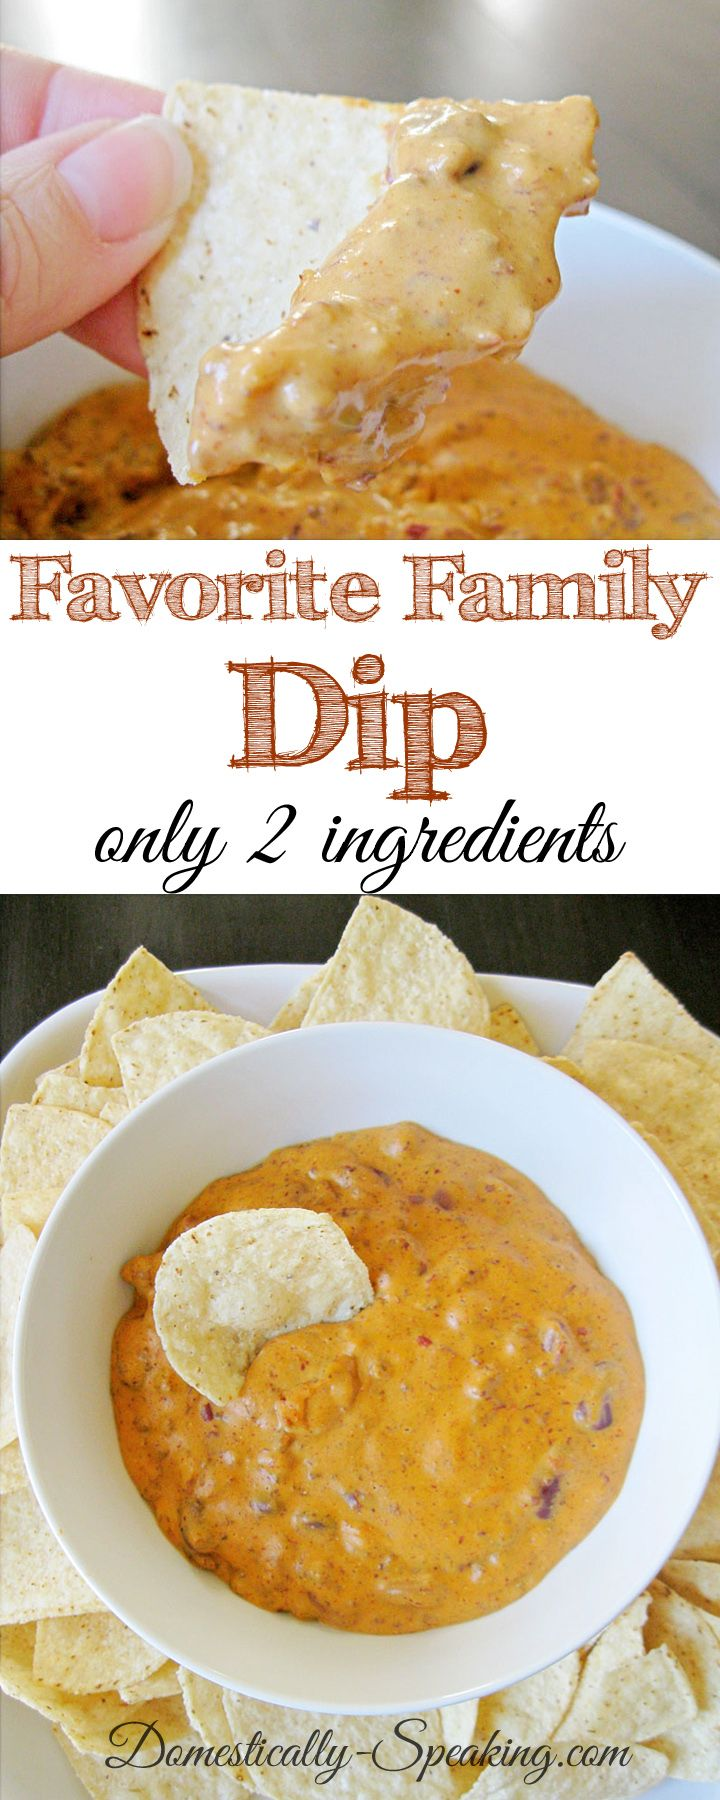 Favorite Family Dip only 2 ingredients - so yummy!  We have this for dinner on occasion too, but it's the perfect appetizer.